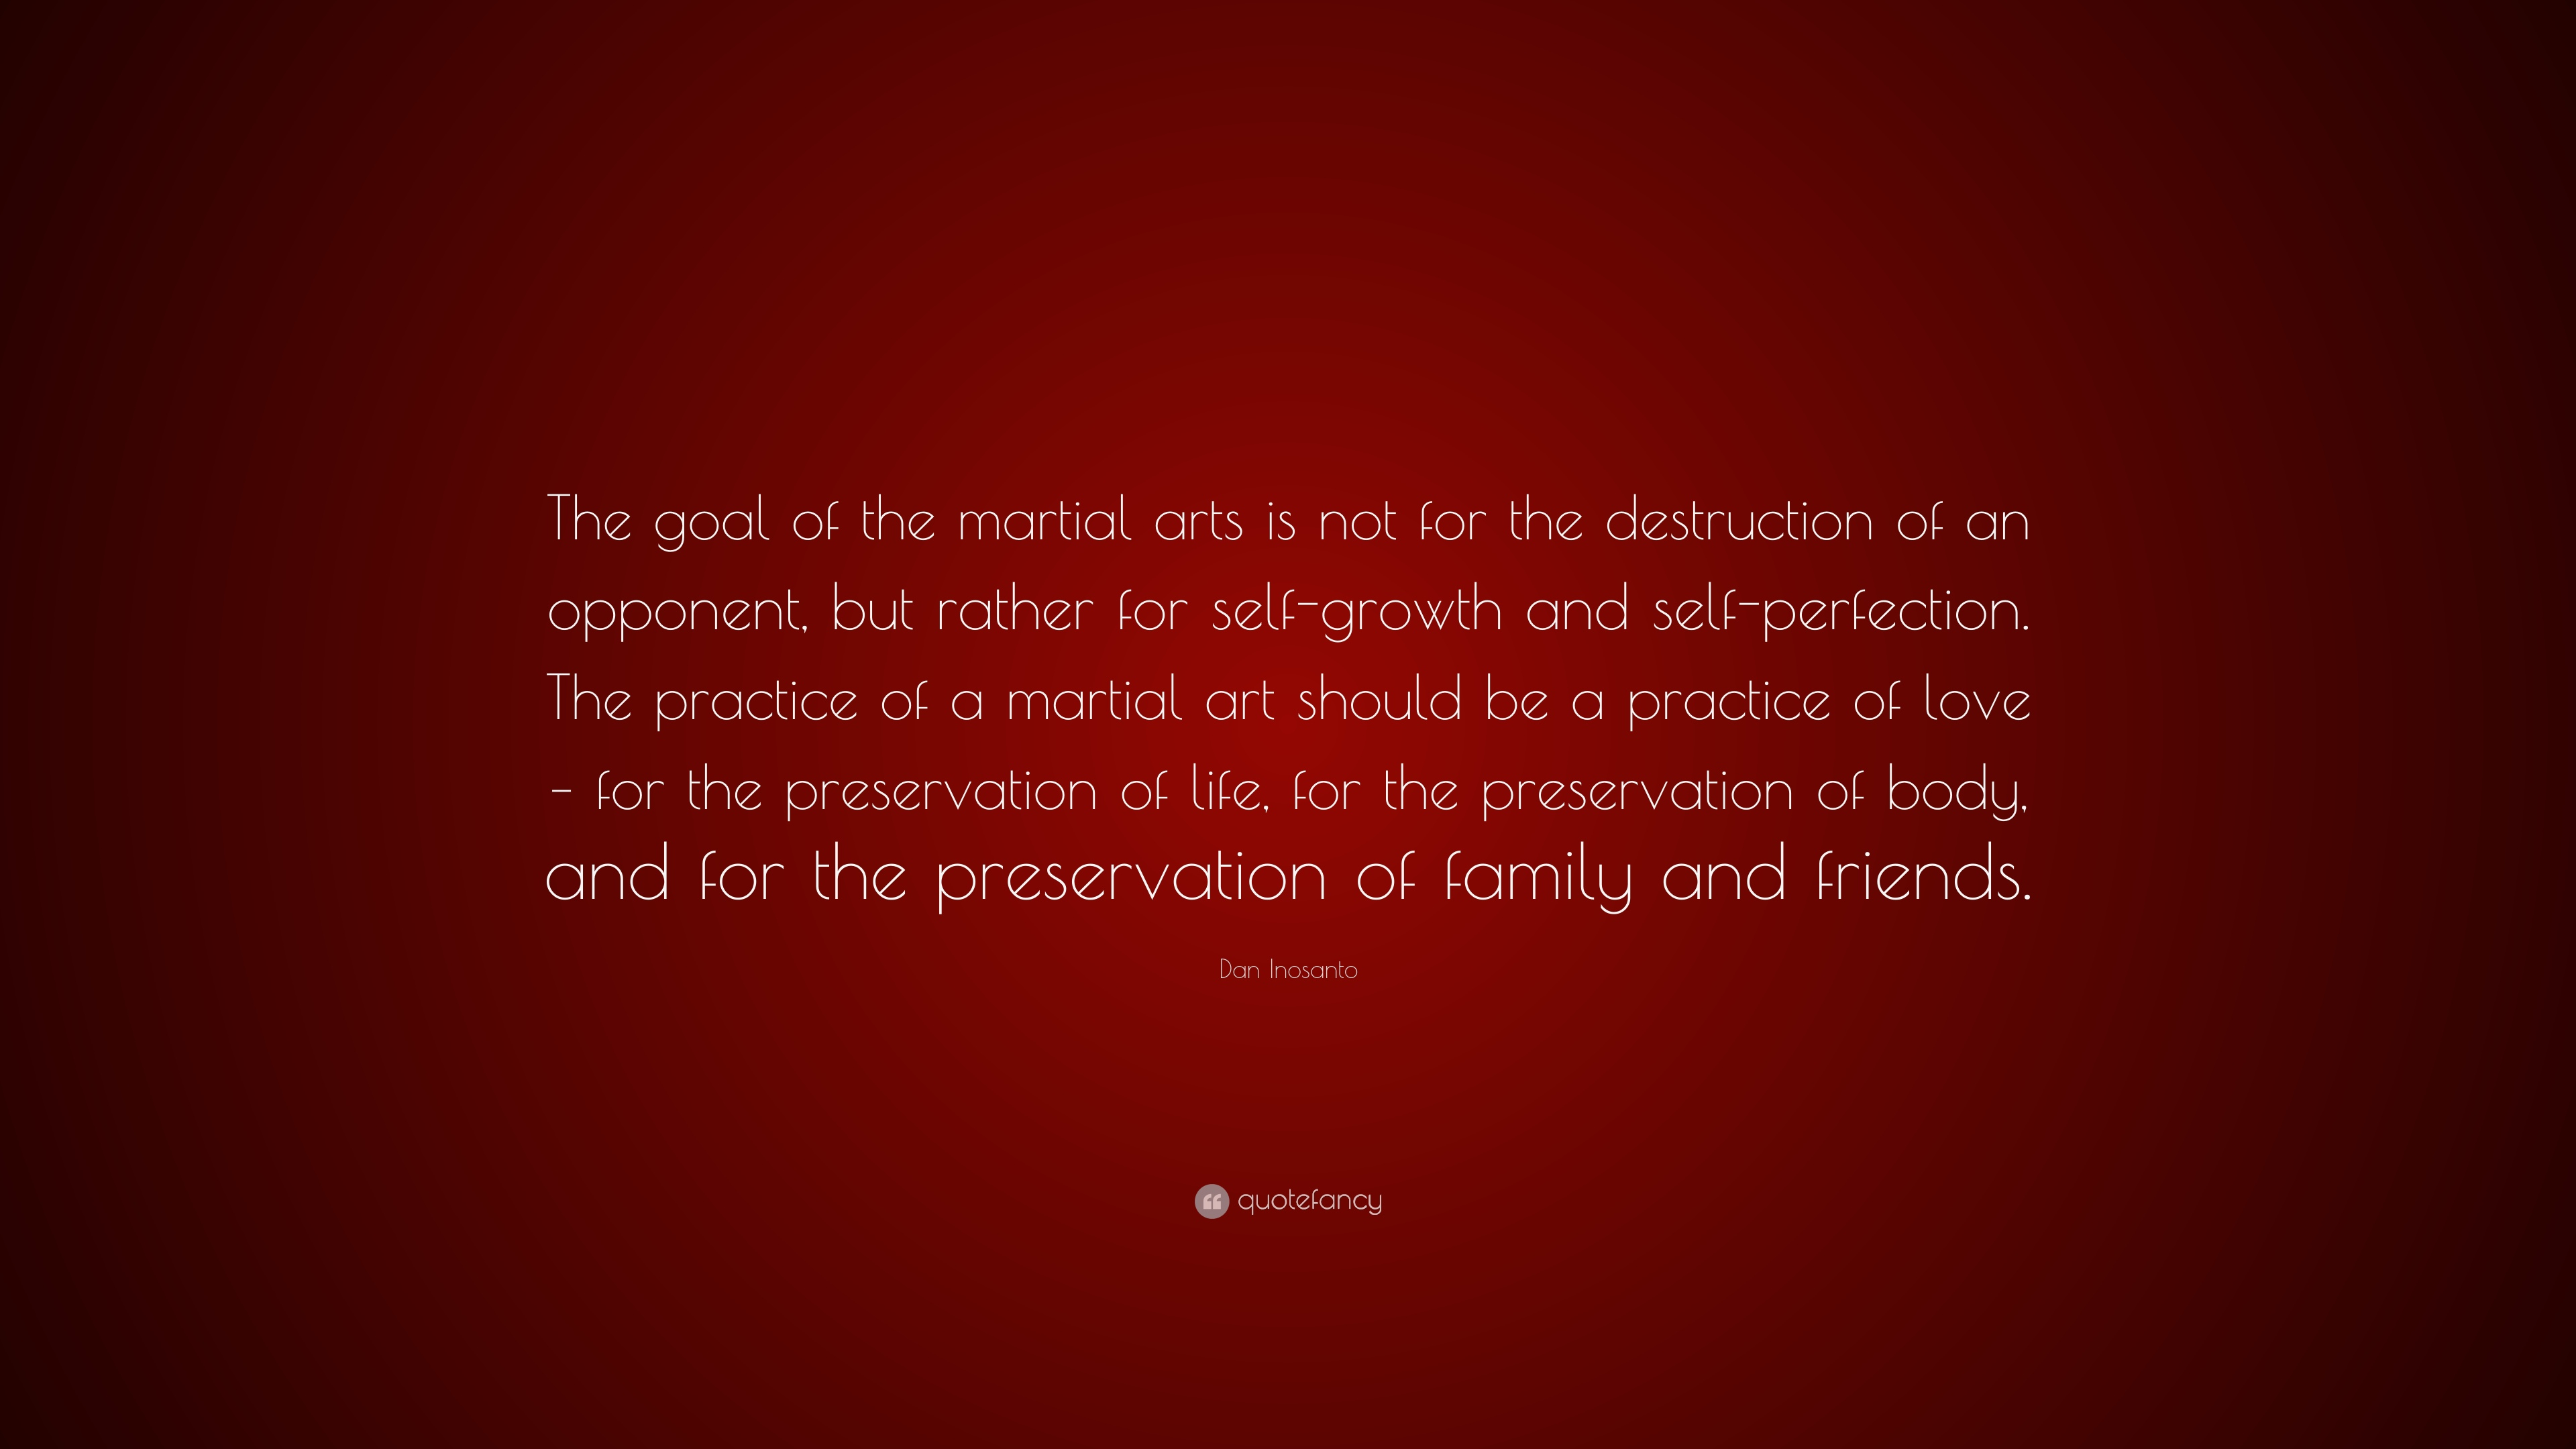 Dan Inosanto Quote The Goal Of The Martial Arts Is Not For The Destruction Of An Opponent But Rather For Self Growth And Self Perfection 7 Wallpapers Quotefancy